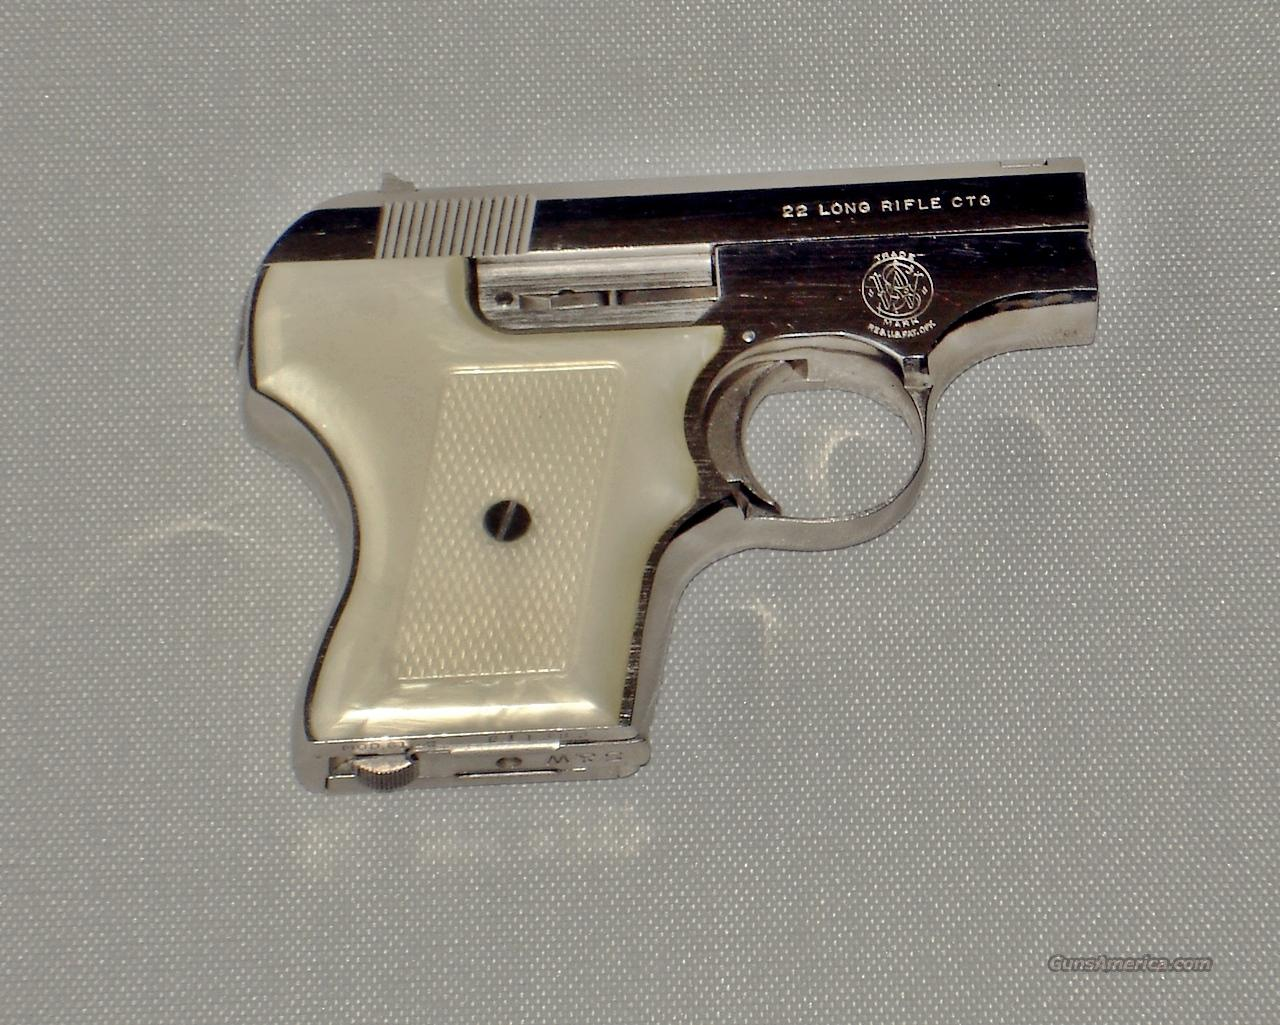 Smith & Wesson   Model  61-2  Guns > Pistols > Smith & Wesson Pistols - Autos > .22 Autos